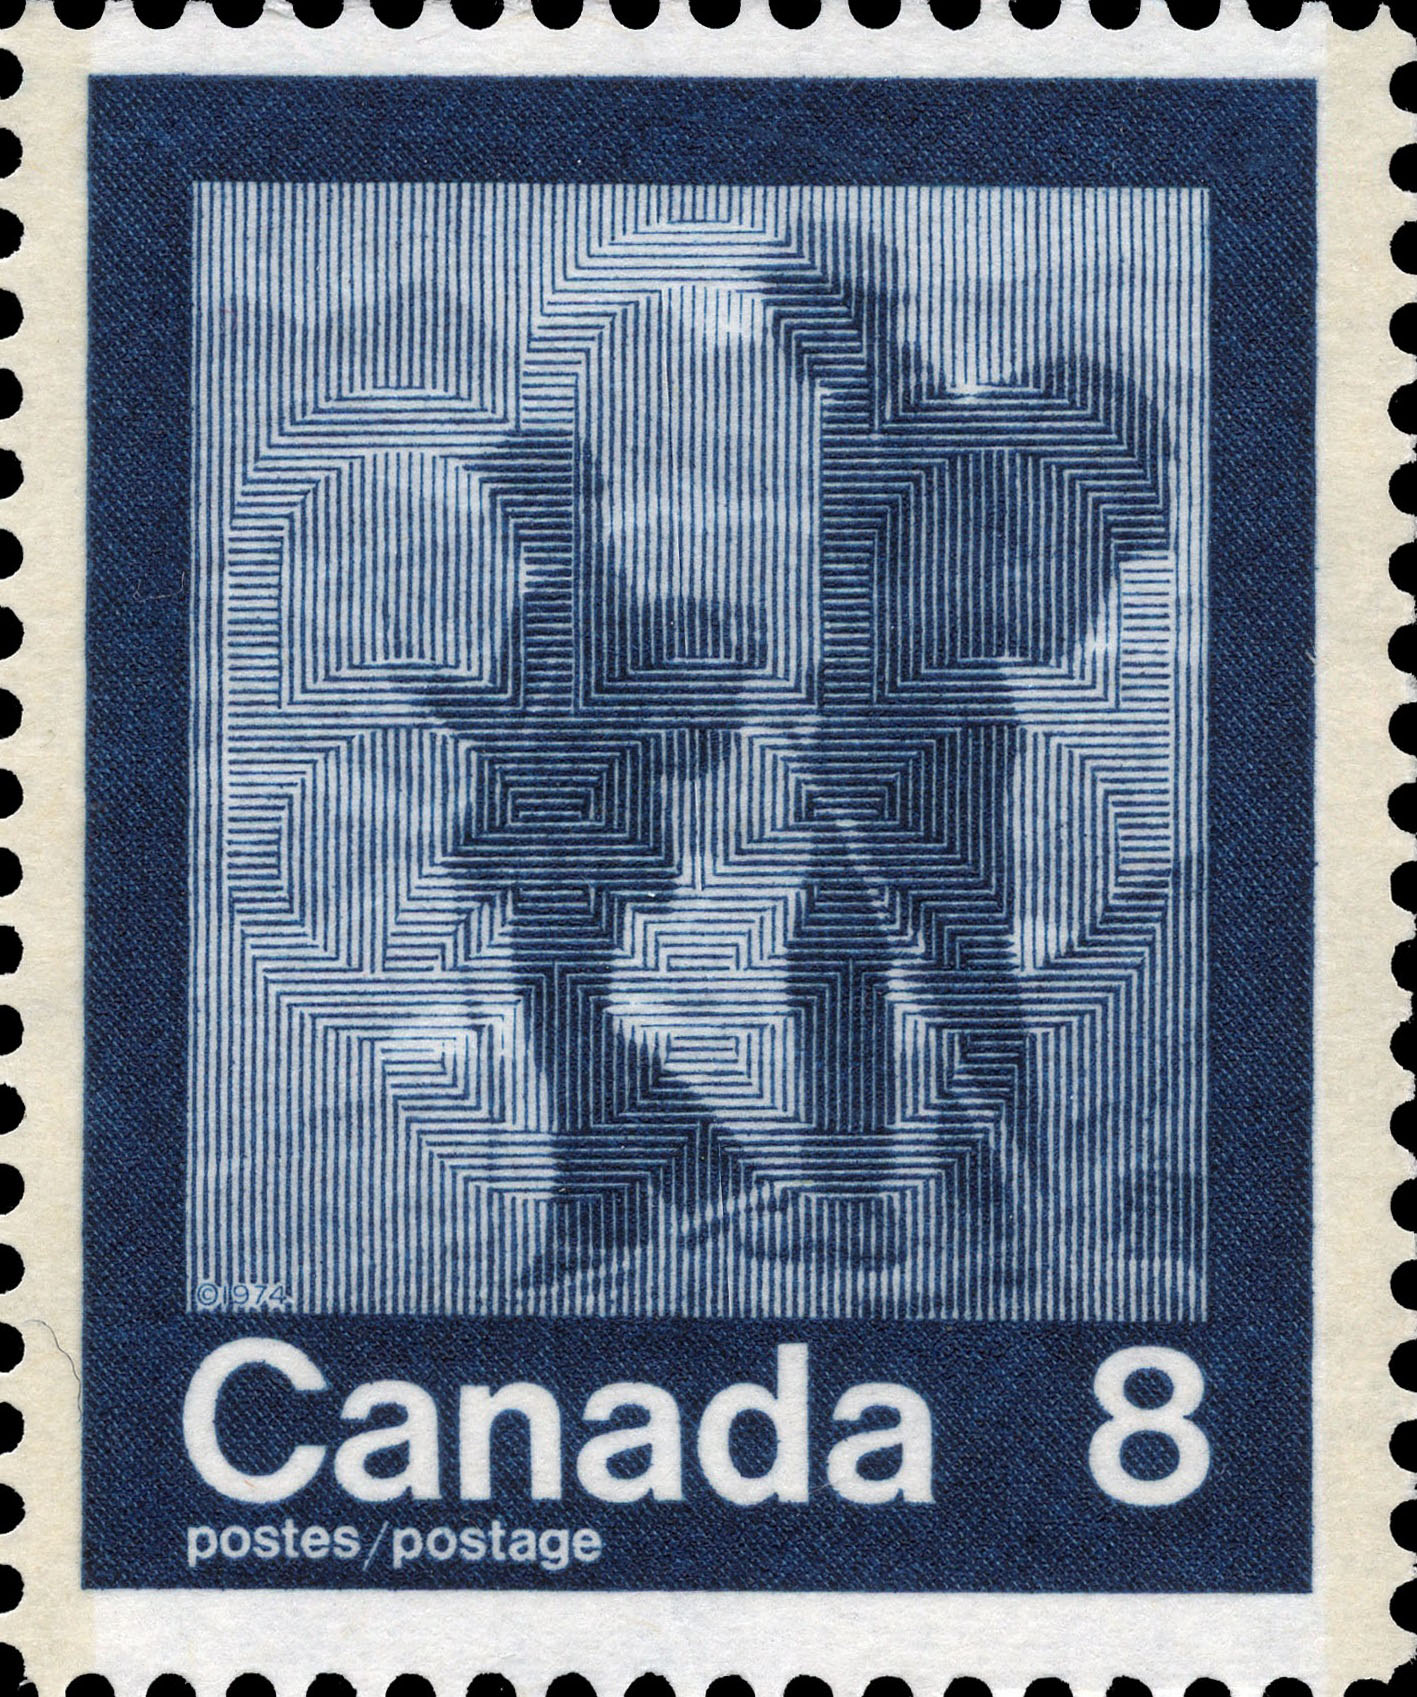 Hiking Canada Postage Stamp | 1976 Olympic Games, Keeping Fit